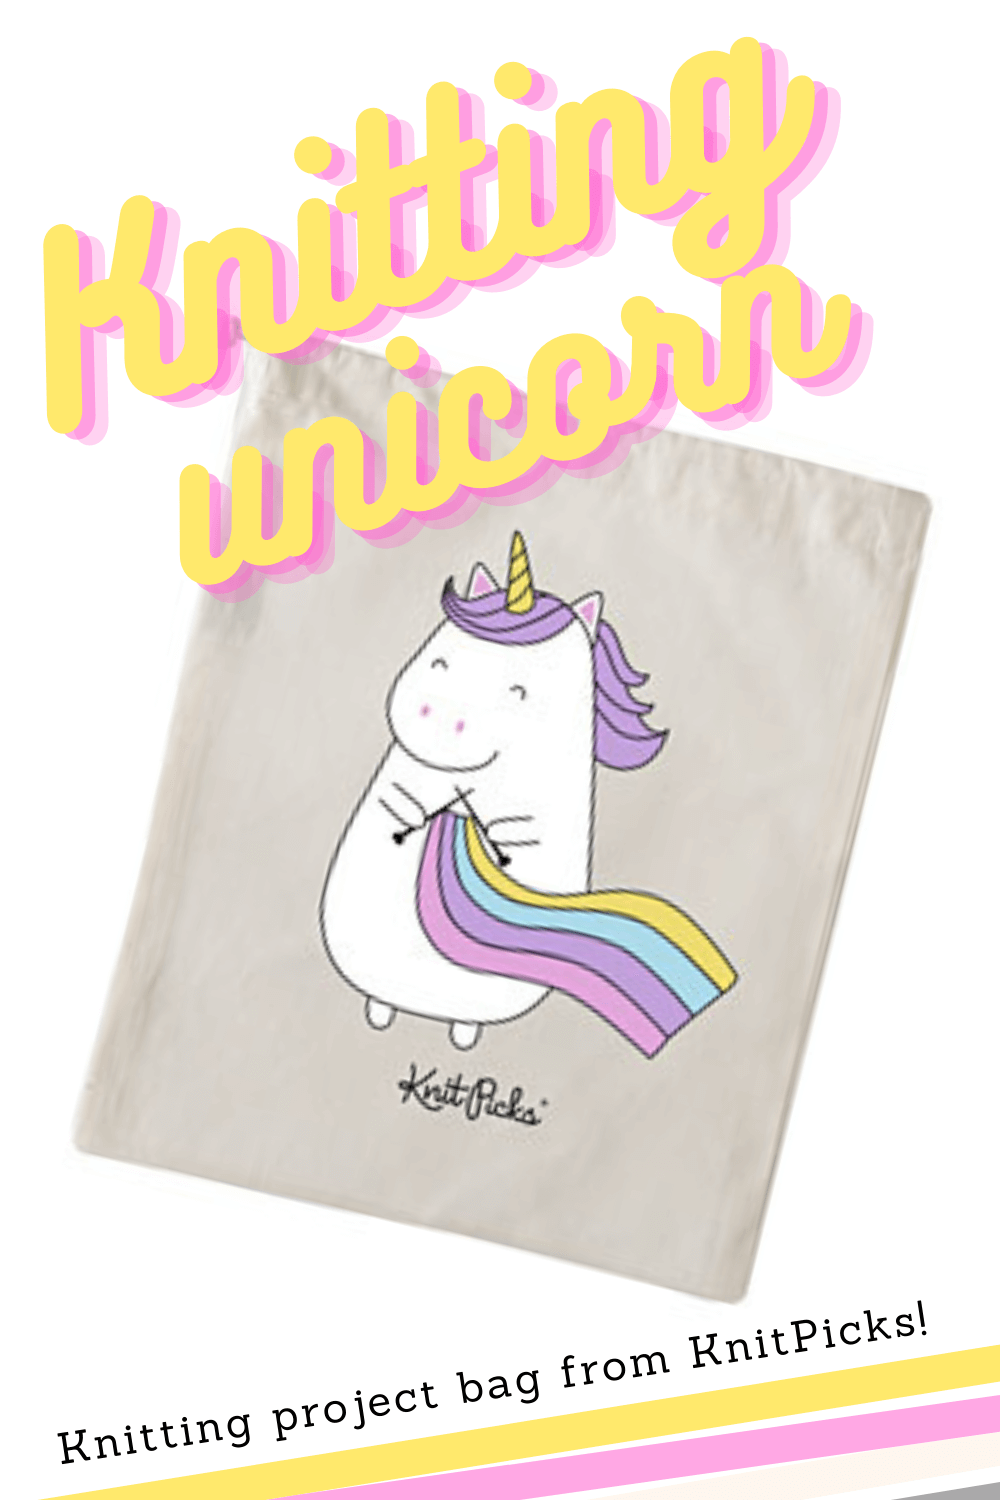 Project bag with a unicorn knitting a rainbow